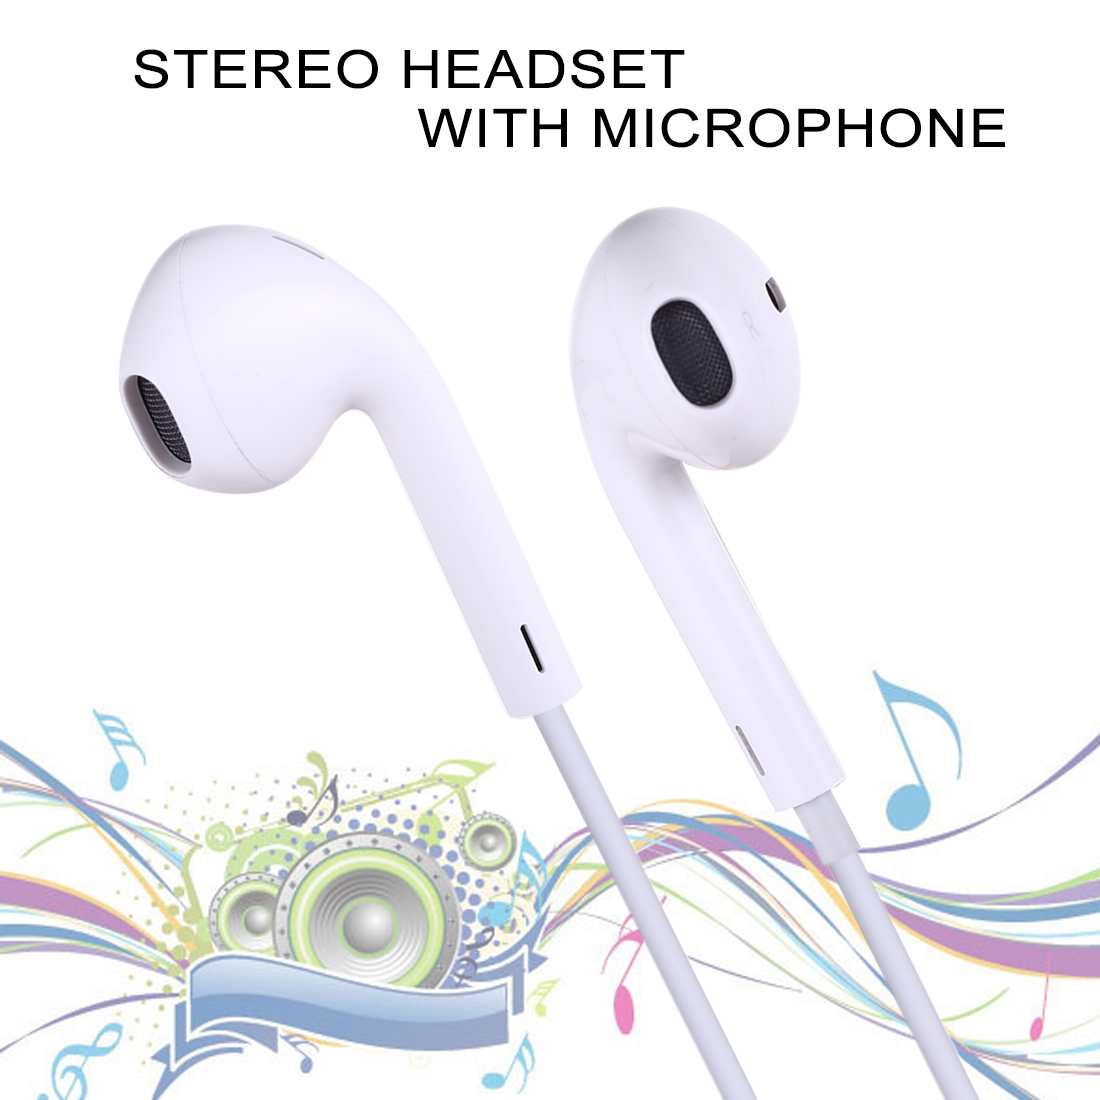 M26 8 Pin Stereo Dynamic Bass Earphone with Mic (White)